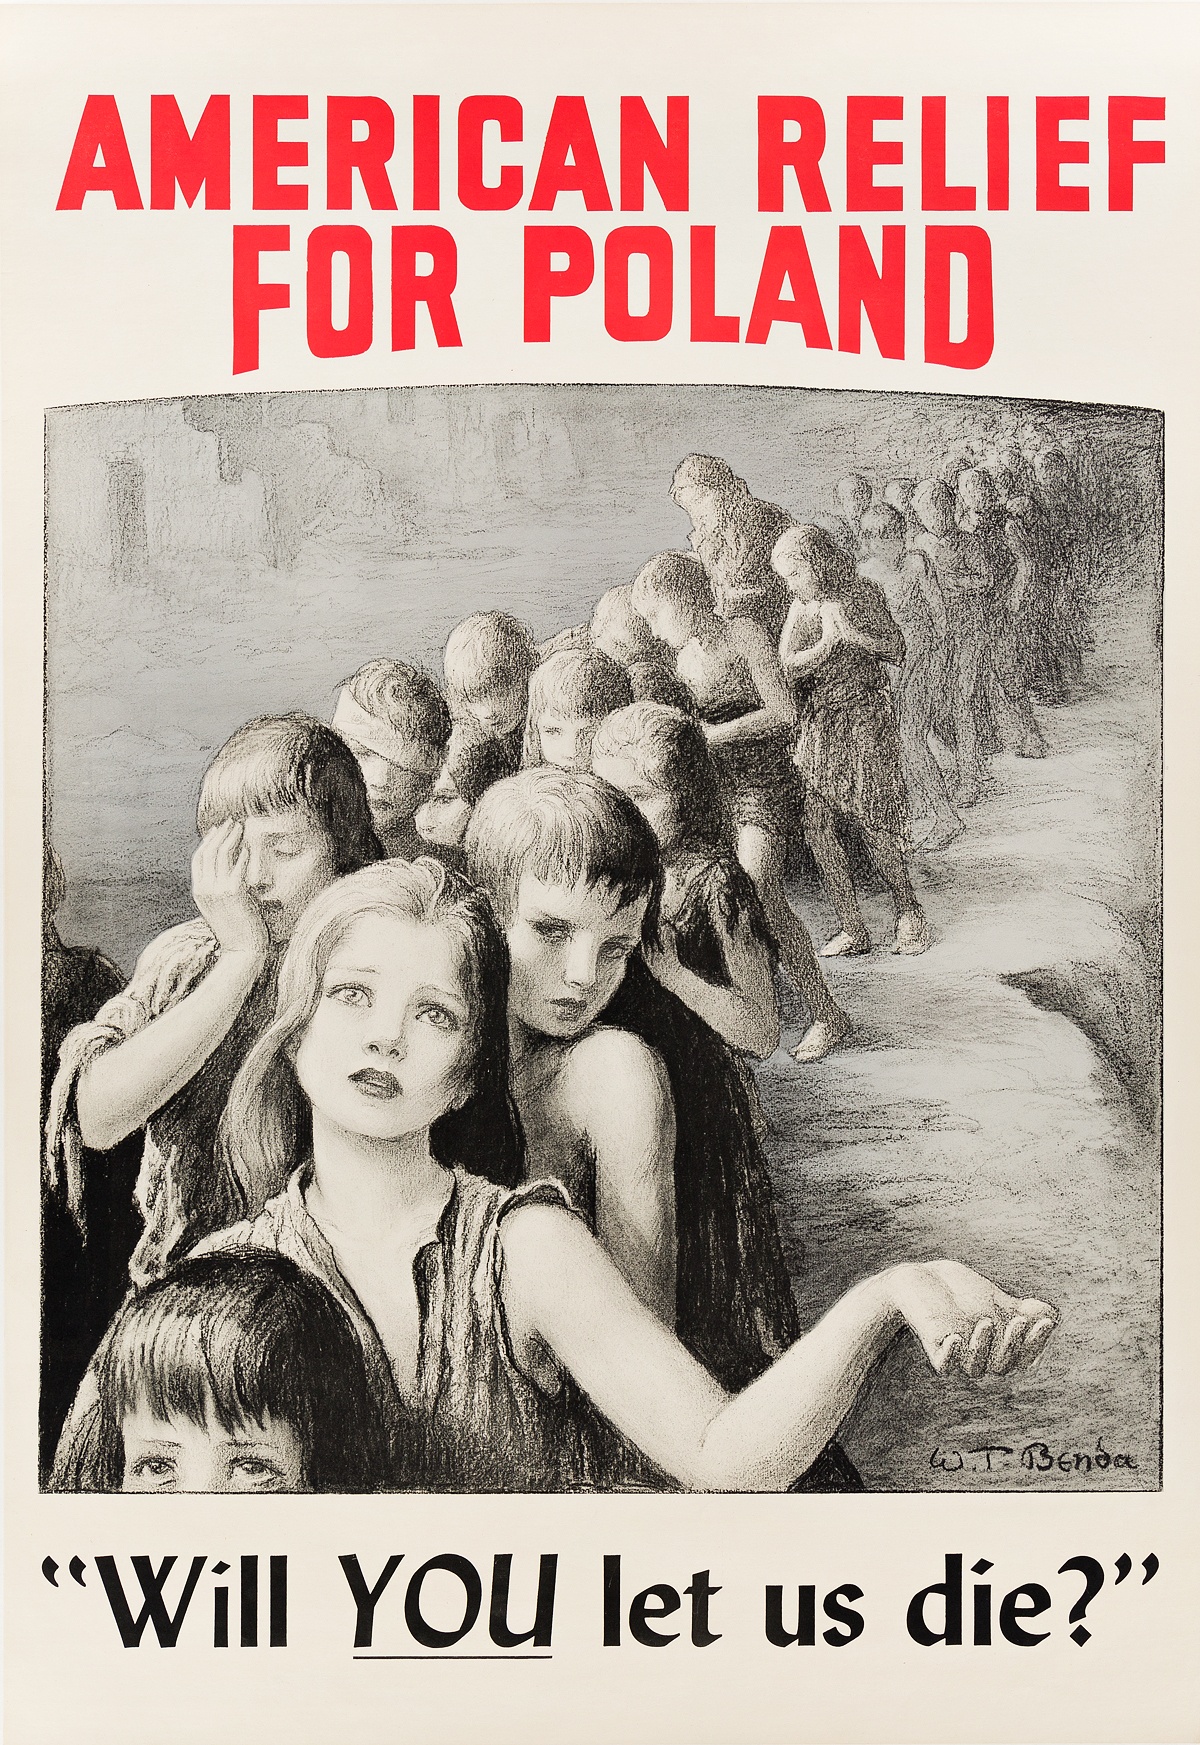 WLADYSLAW-THEODOR-BENDA-(1873-1948)-AMERICAN-RELIEF-FOR-POLAND--WILL-YOU-LET-US-DIE-43x29-inches-110x75-cm